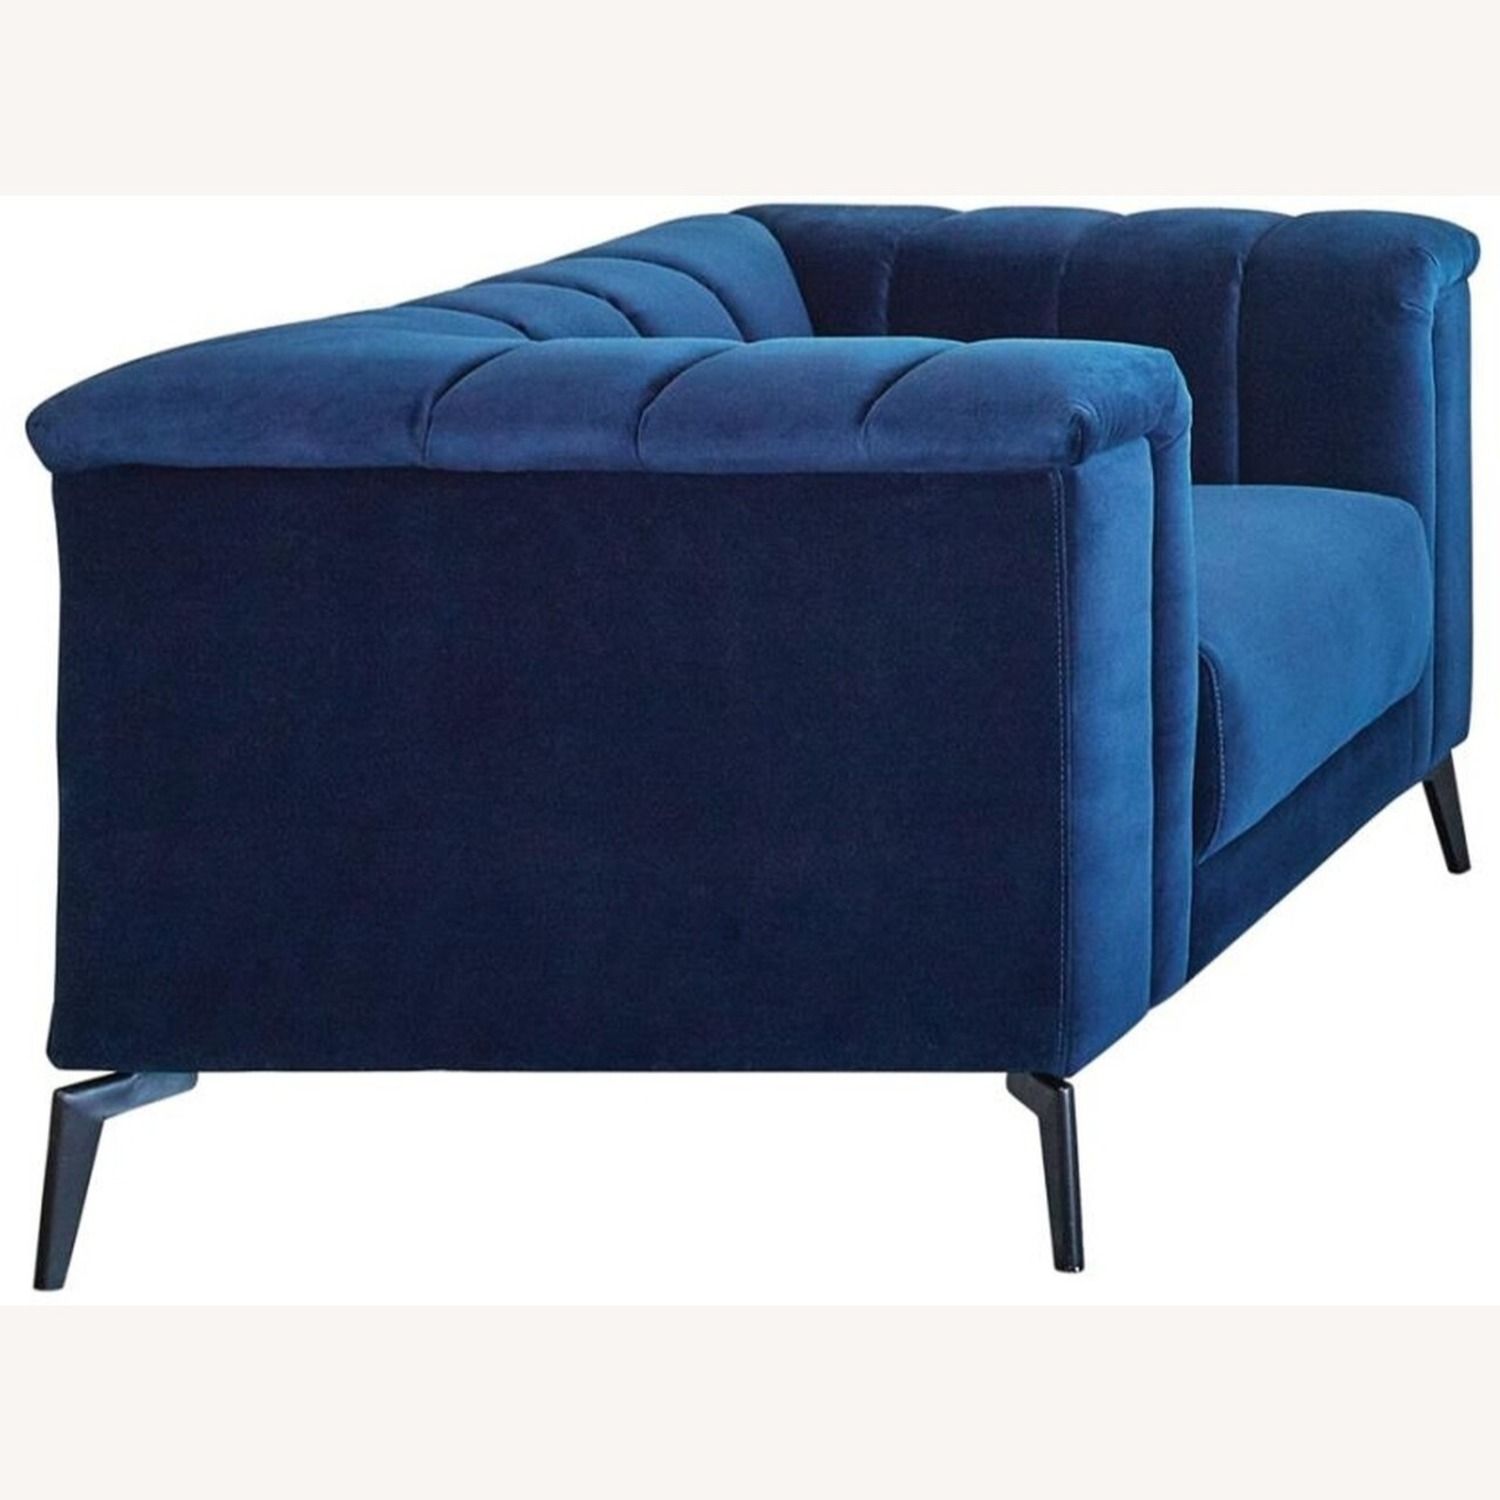 Sofa In Blue Matte Velvet W/ Black Metal Legs - image-1